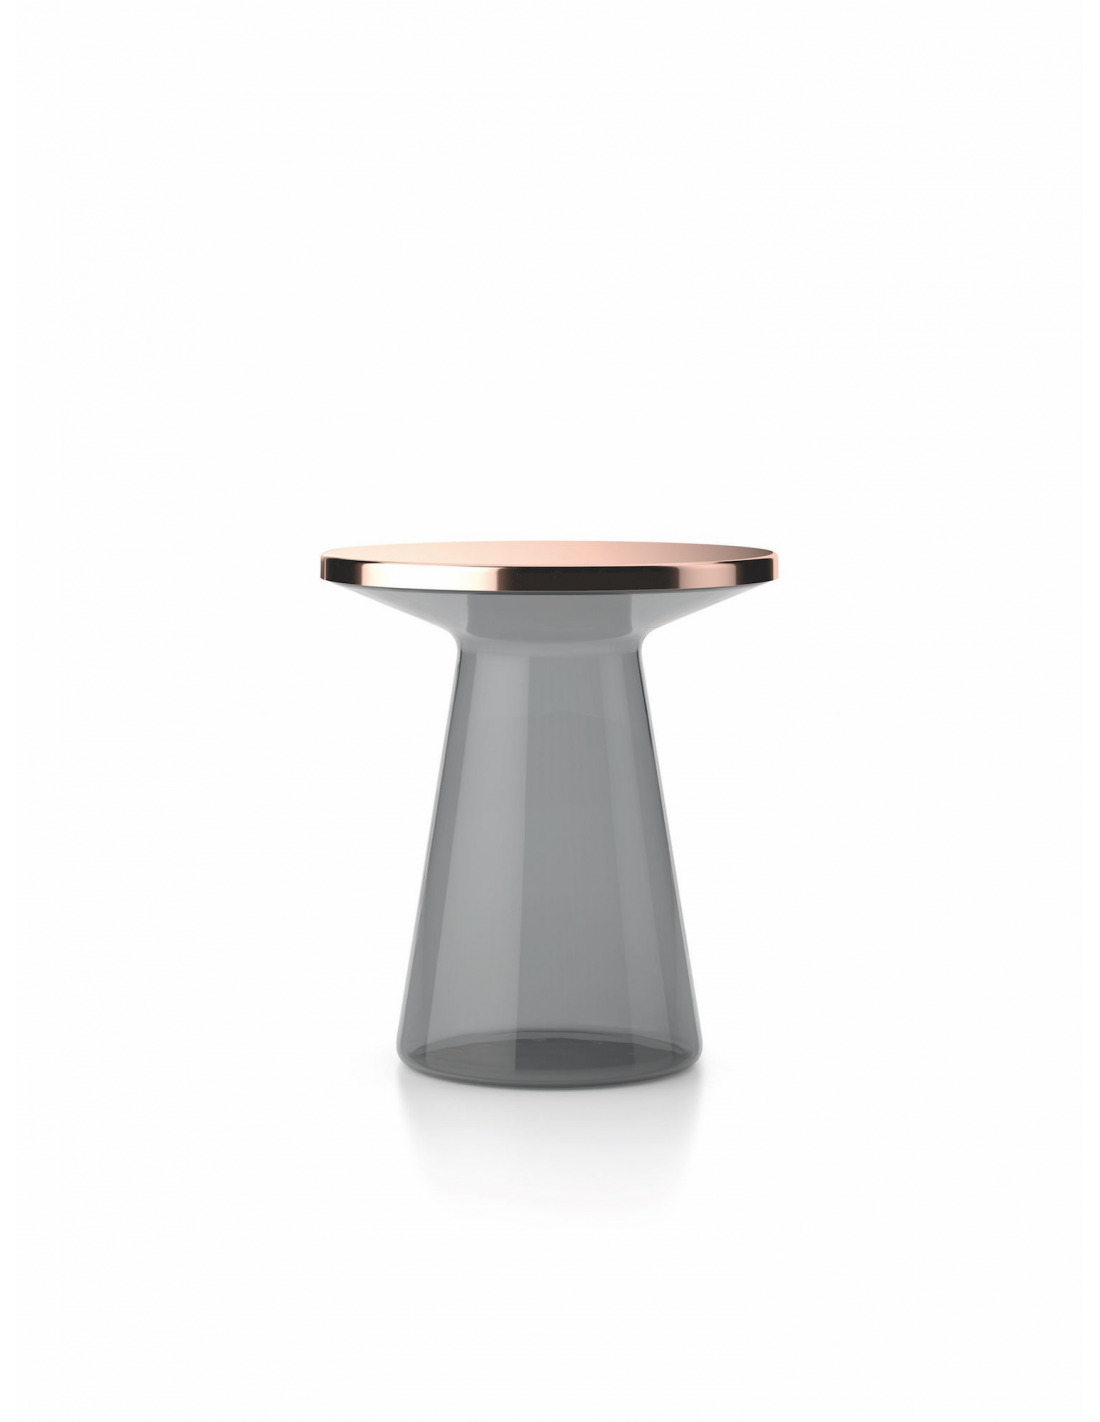 Table de chevet en verre gris design figure otoko - Table de chevet en verre ...